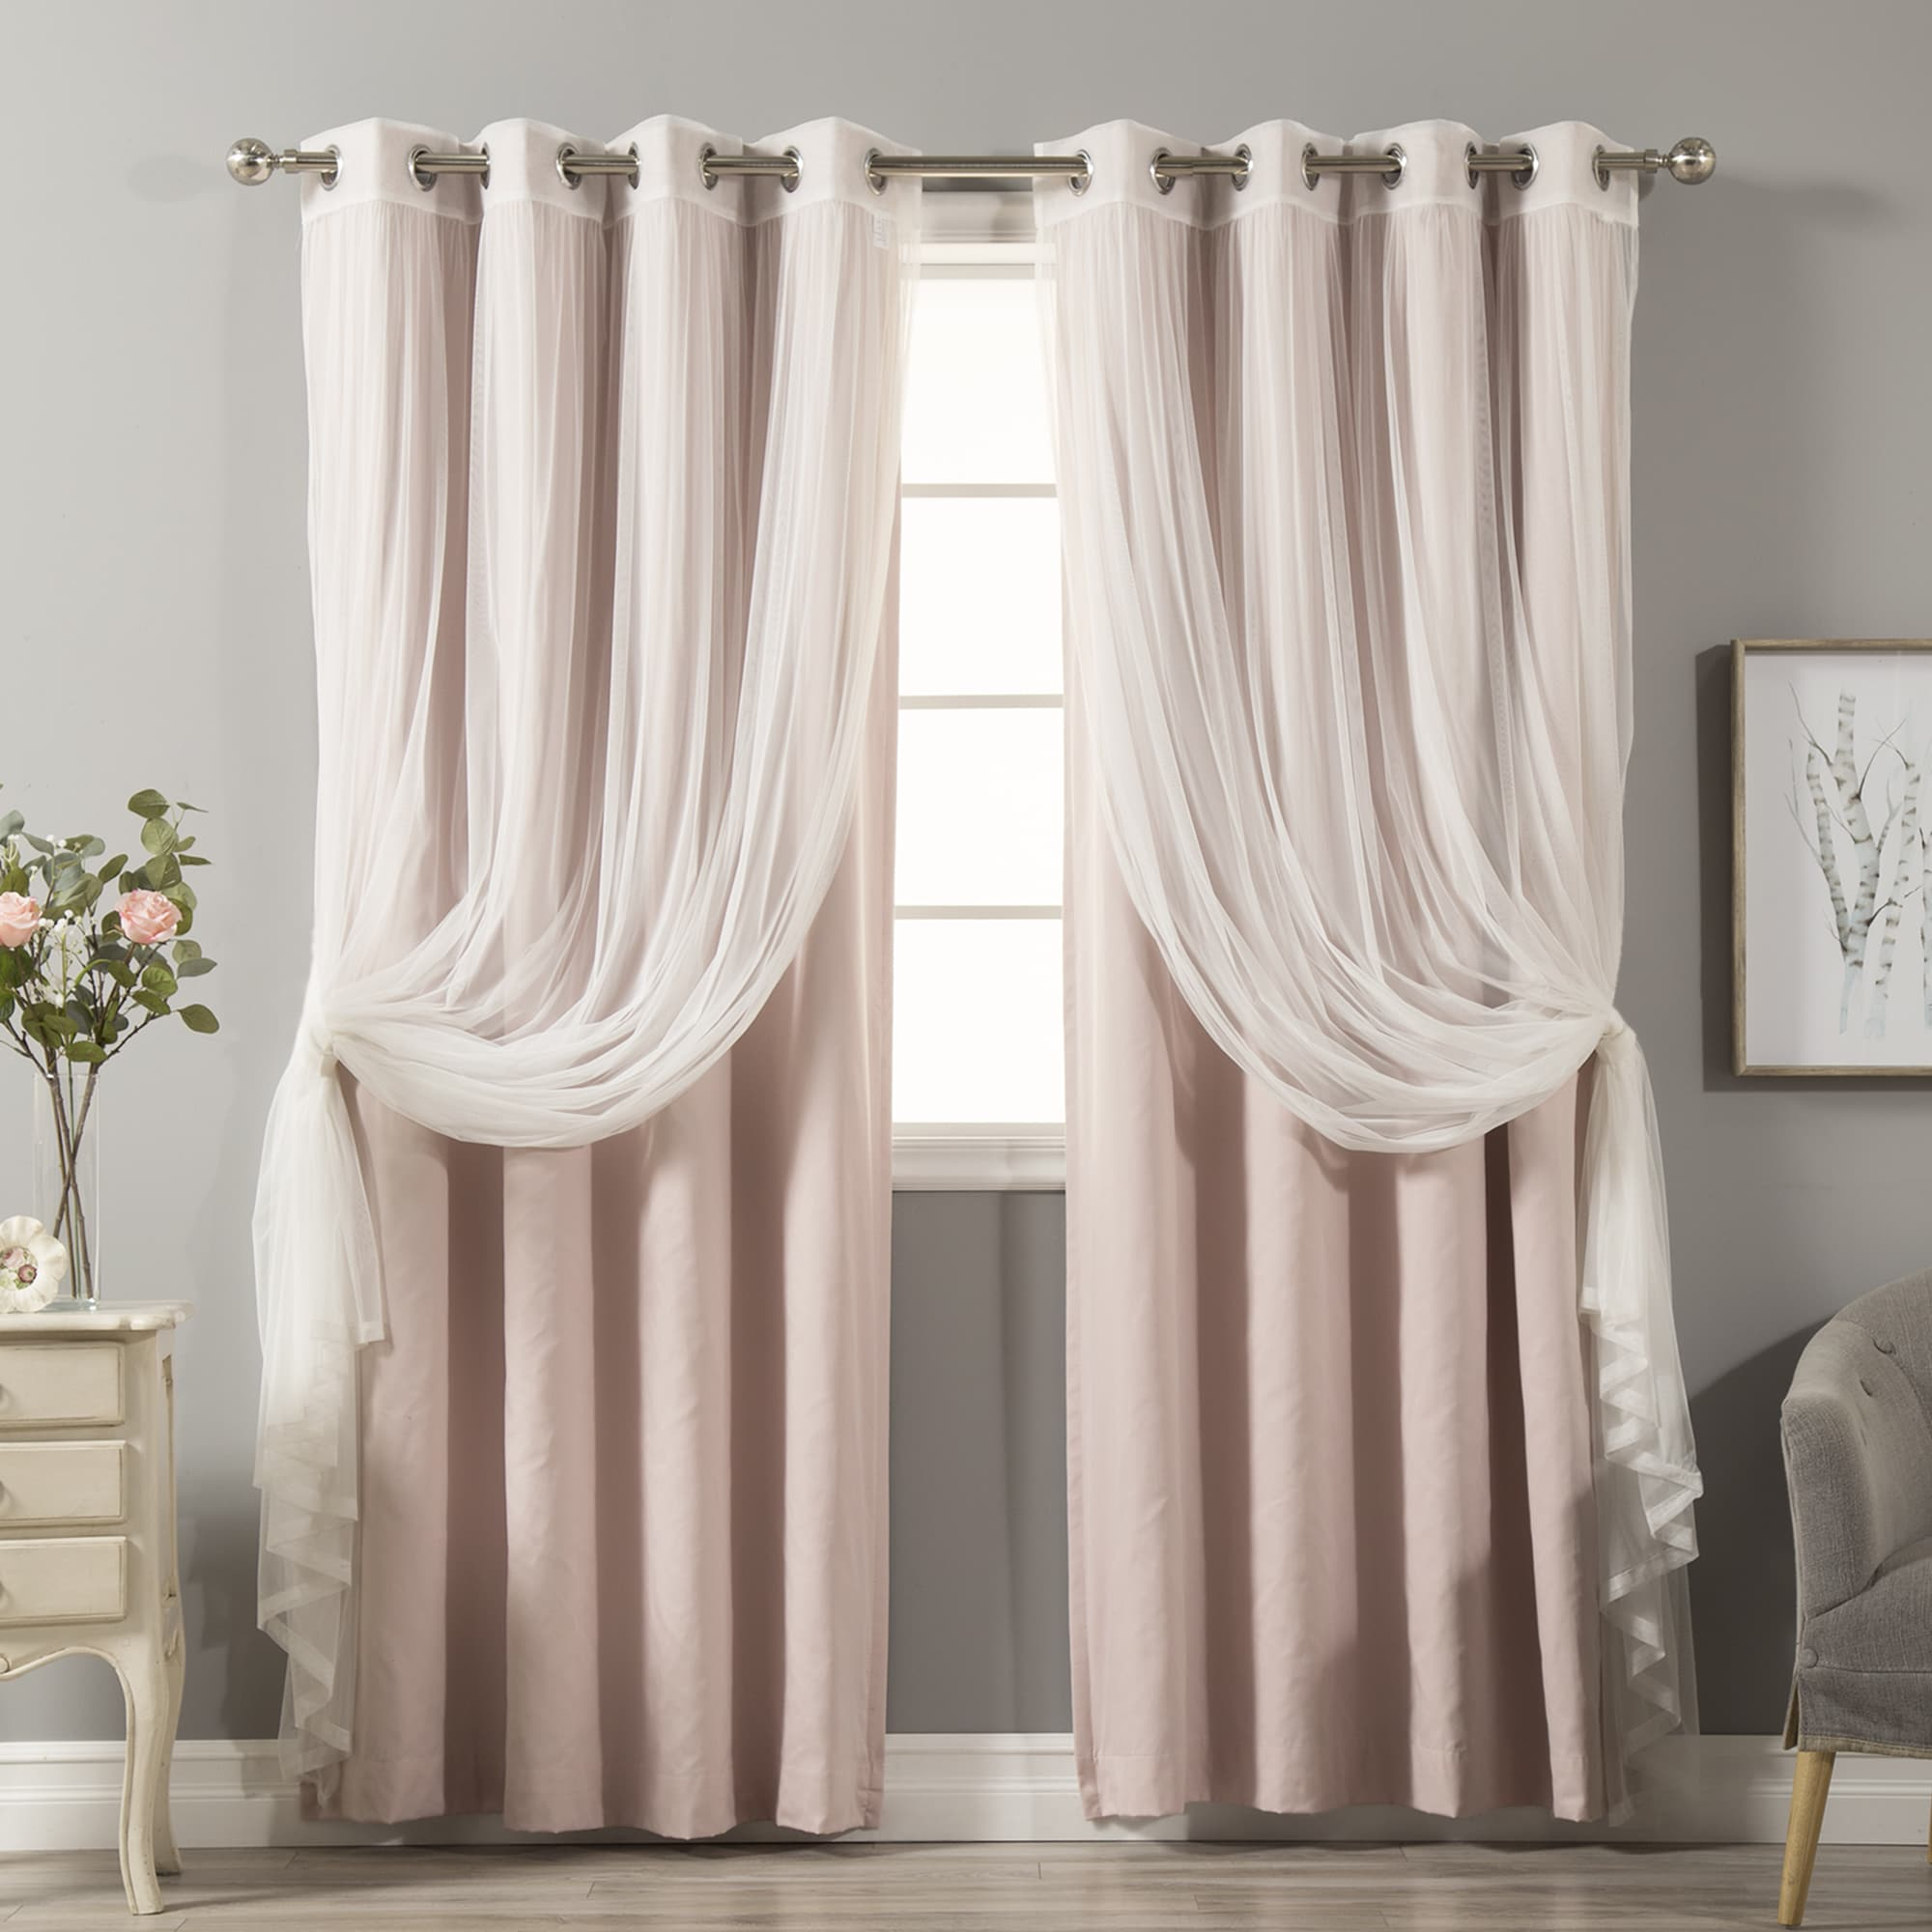 concassage natural canada white etsy grommet furniture grommets curtains cotton blackout linen with look sheer cream off appealing